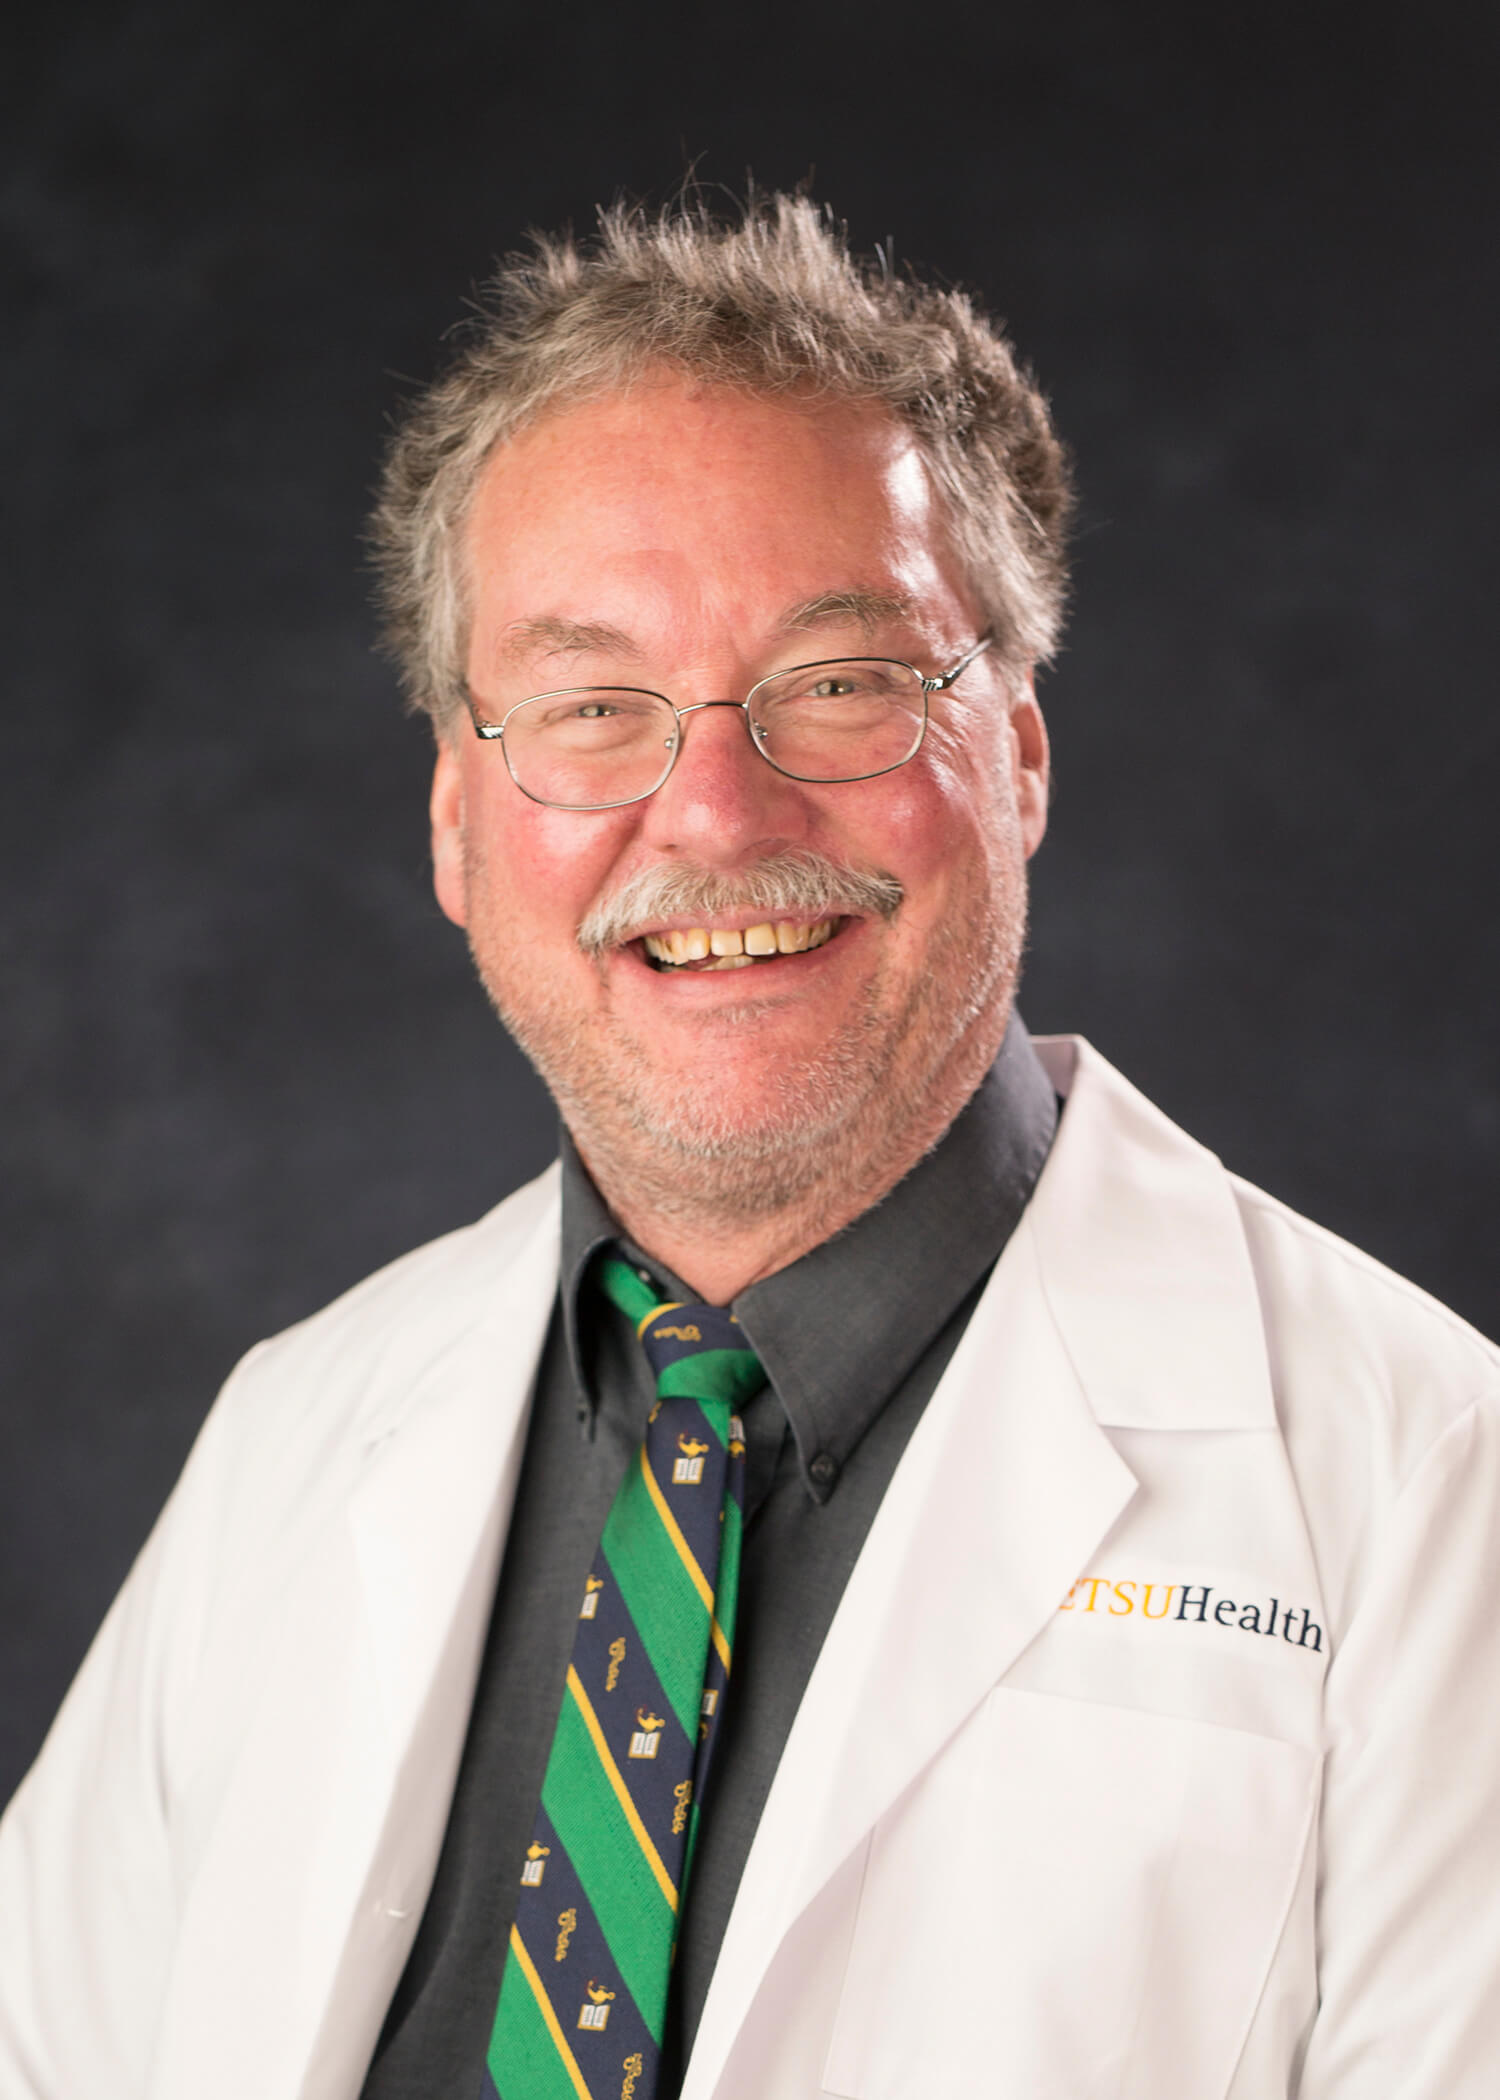 Photo of Jeffrey Summers, M.D.